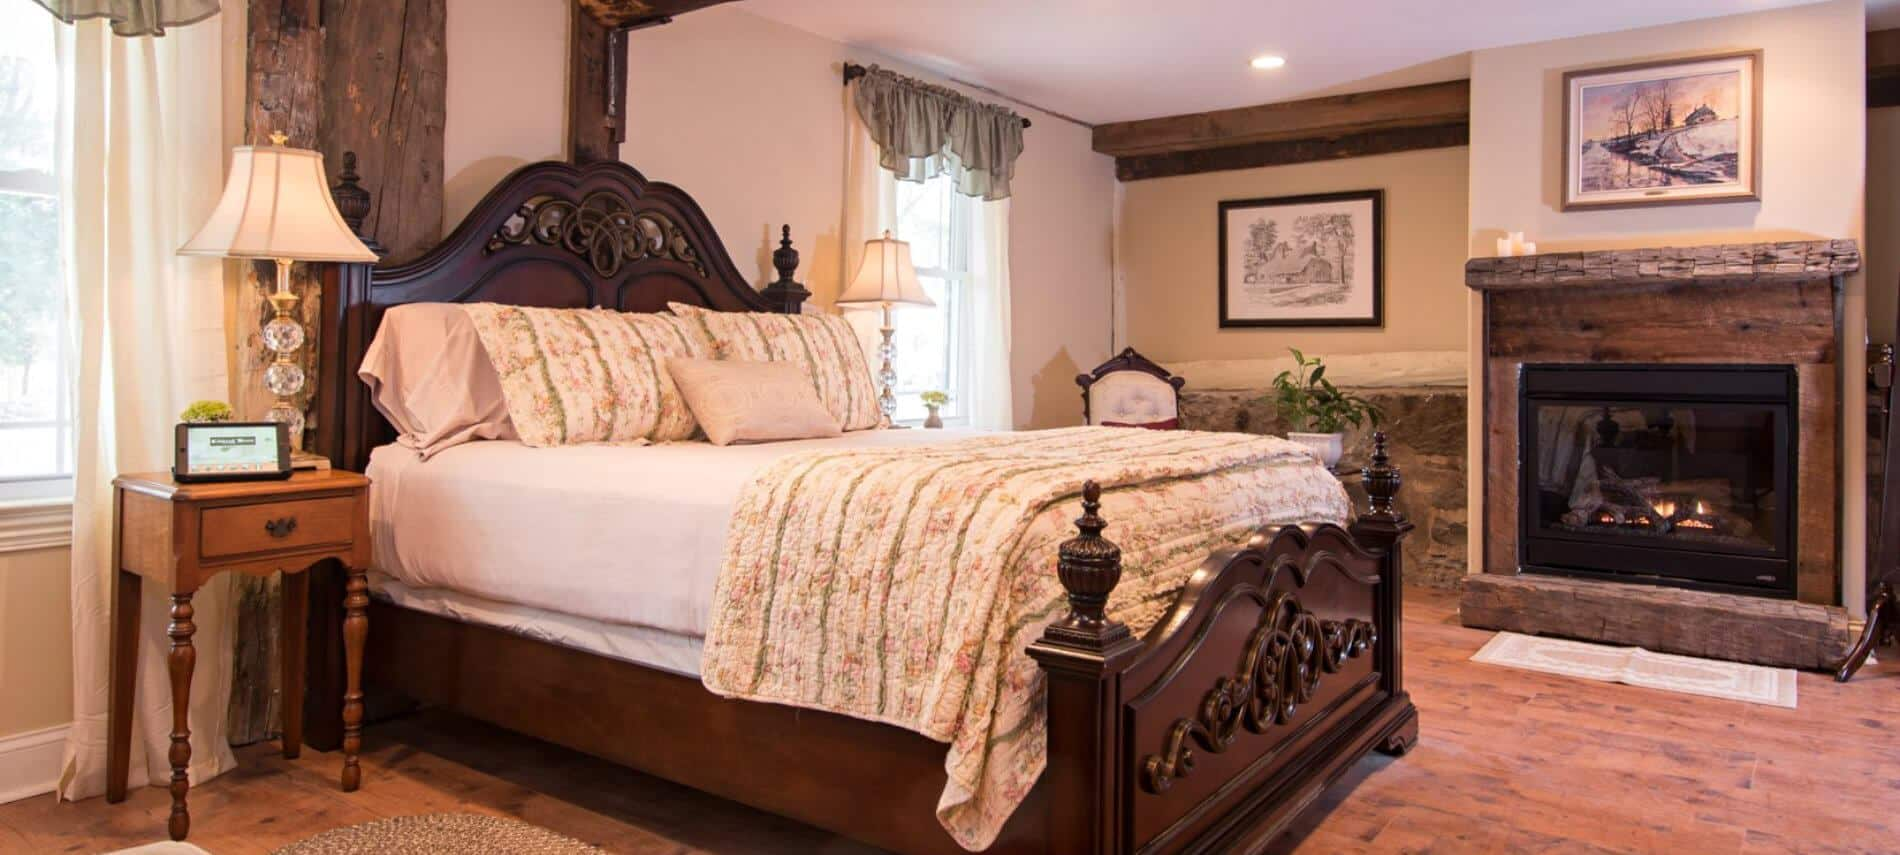 Guestroom features rustic wood fireplace and neatly made bed with white linens and cozy quilt